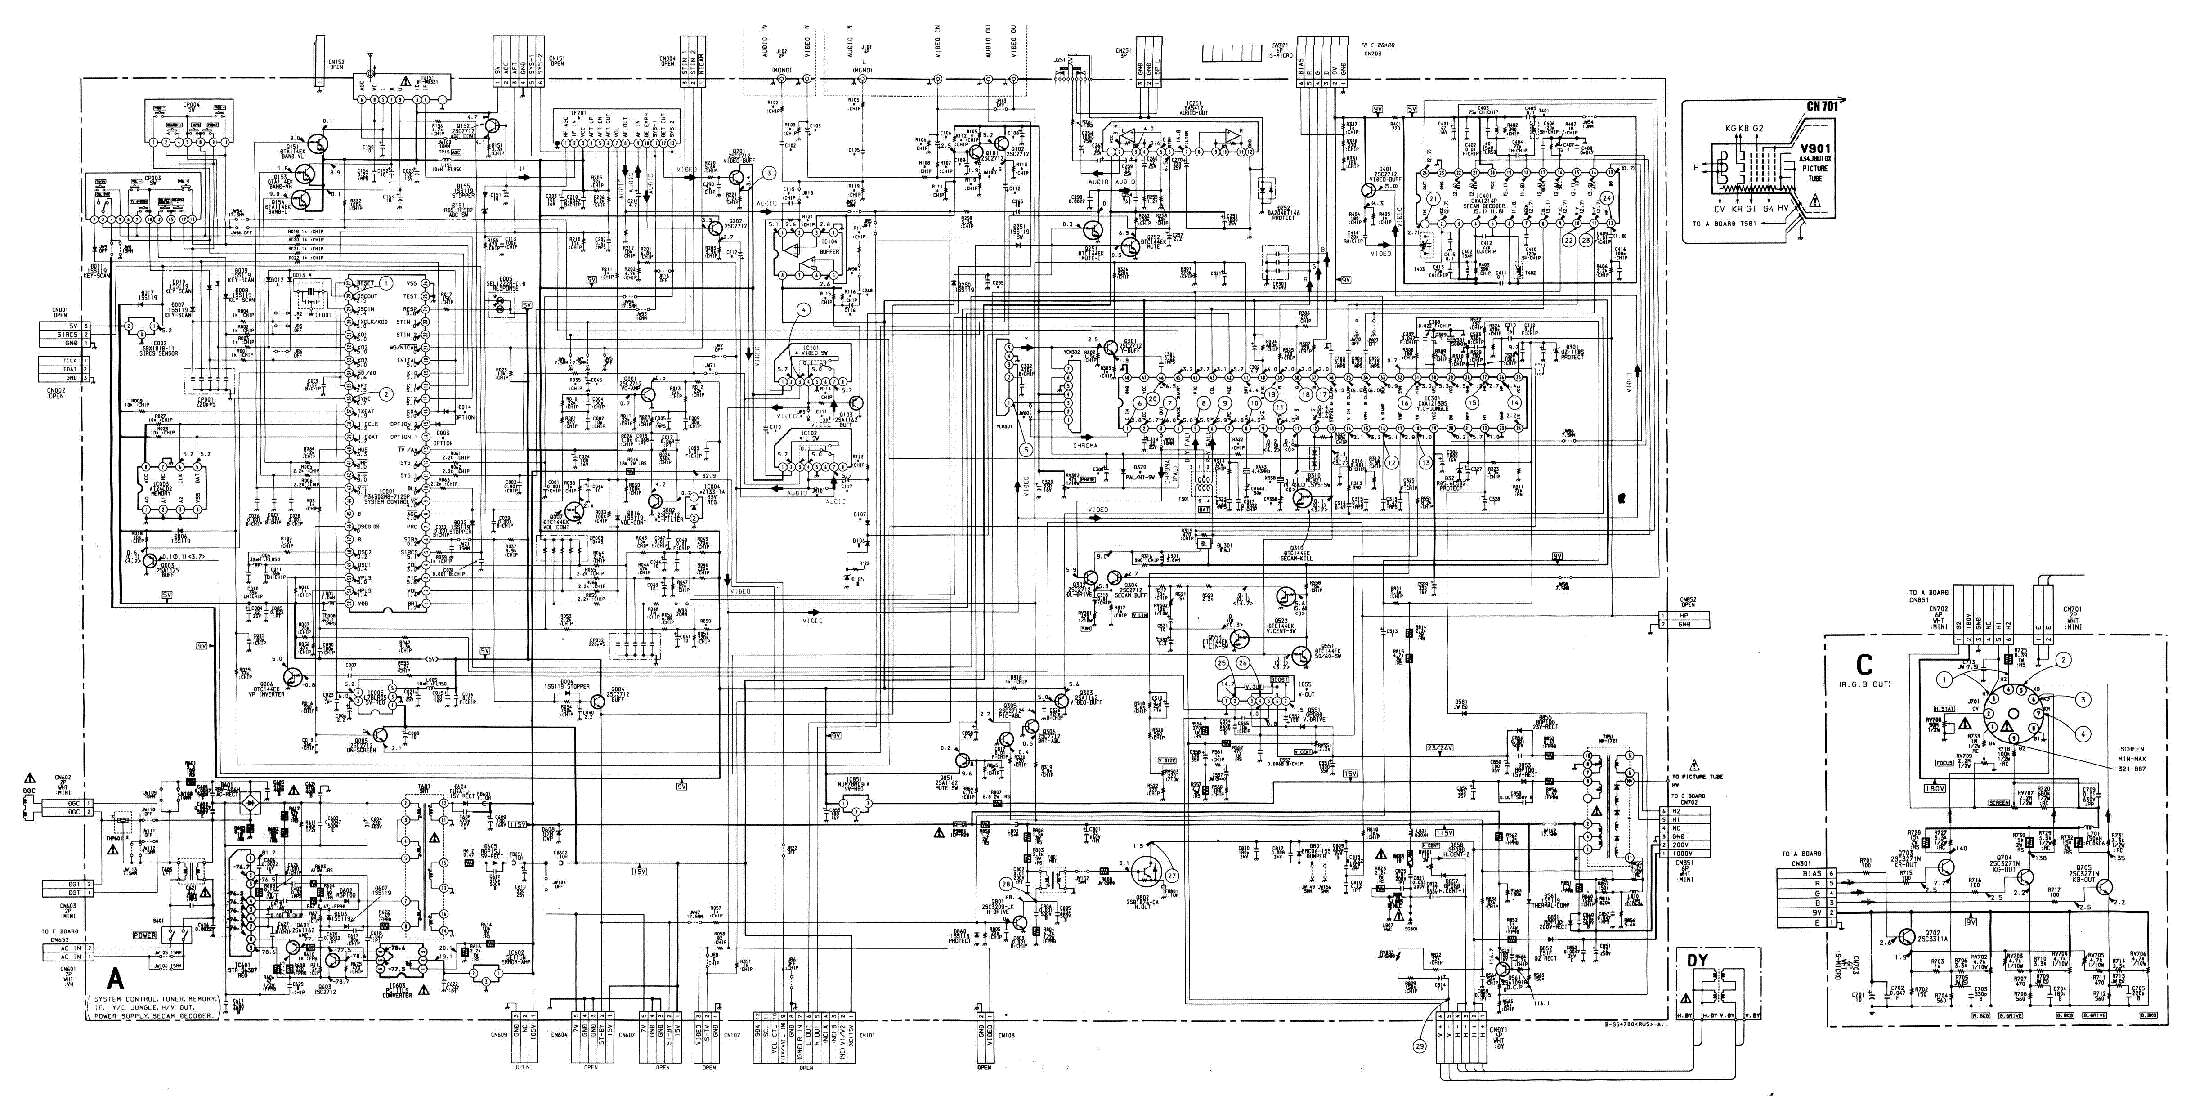 Free Sony Schematic Diagram Wiring Diagrams Vgnaw Series Schematics And Block Trinitron Kv 1487mt 21bmr1 Chassis Scc F21j Ngx40gt1 Power Supply